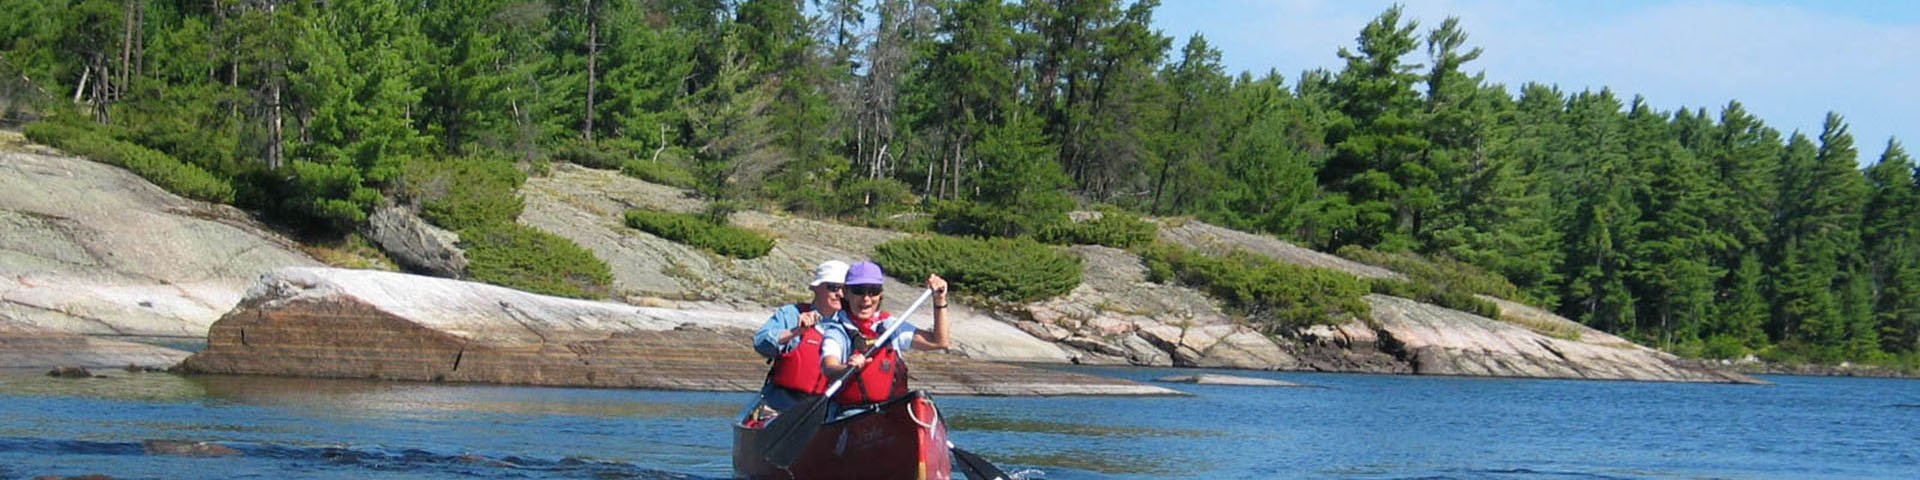 French River Canoe Trip for Families by Black Feather - Image 157